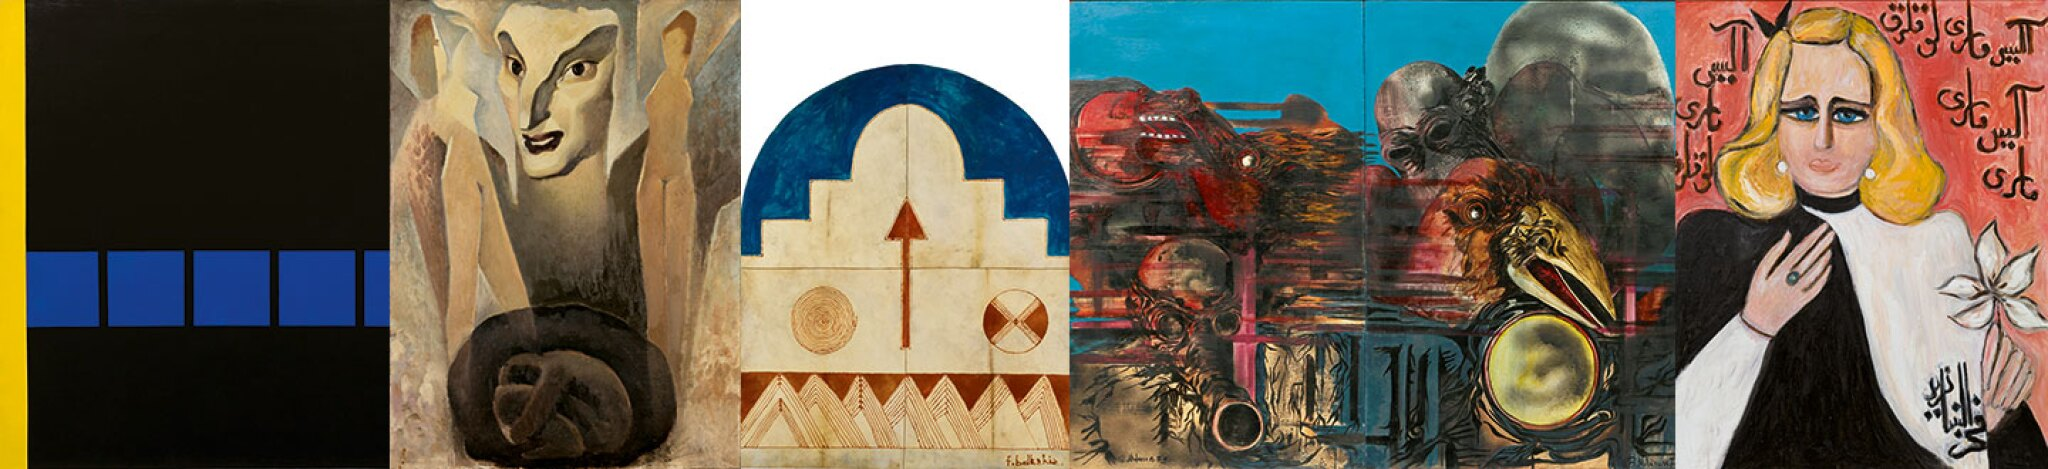 20th Century Art / Middle East